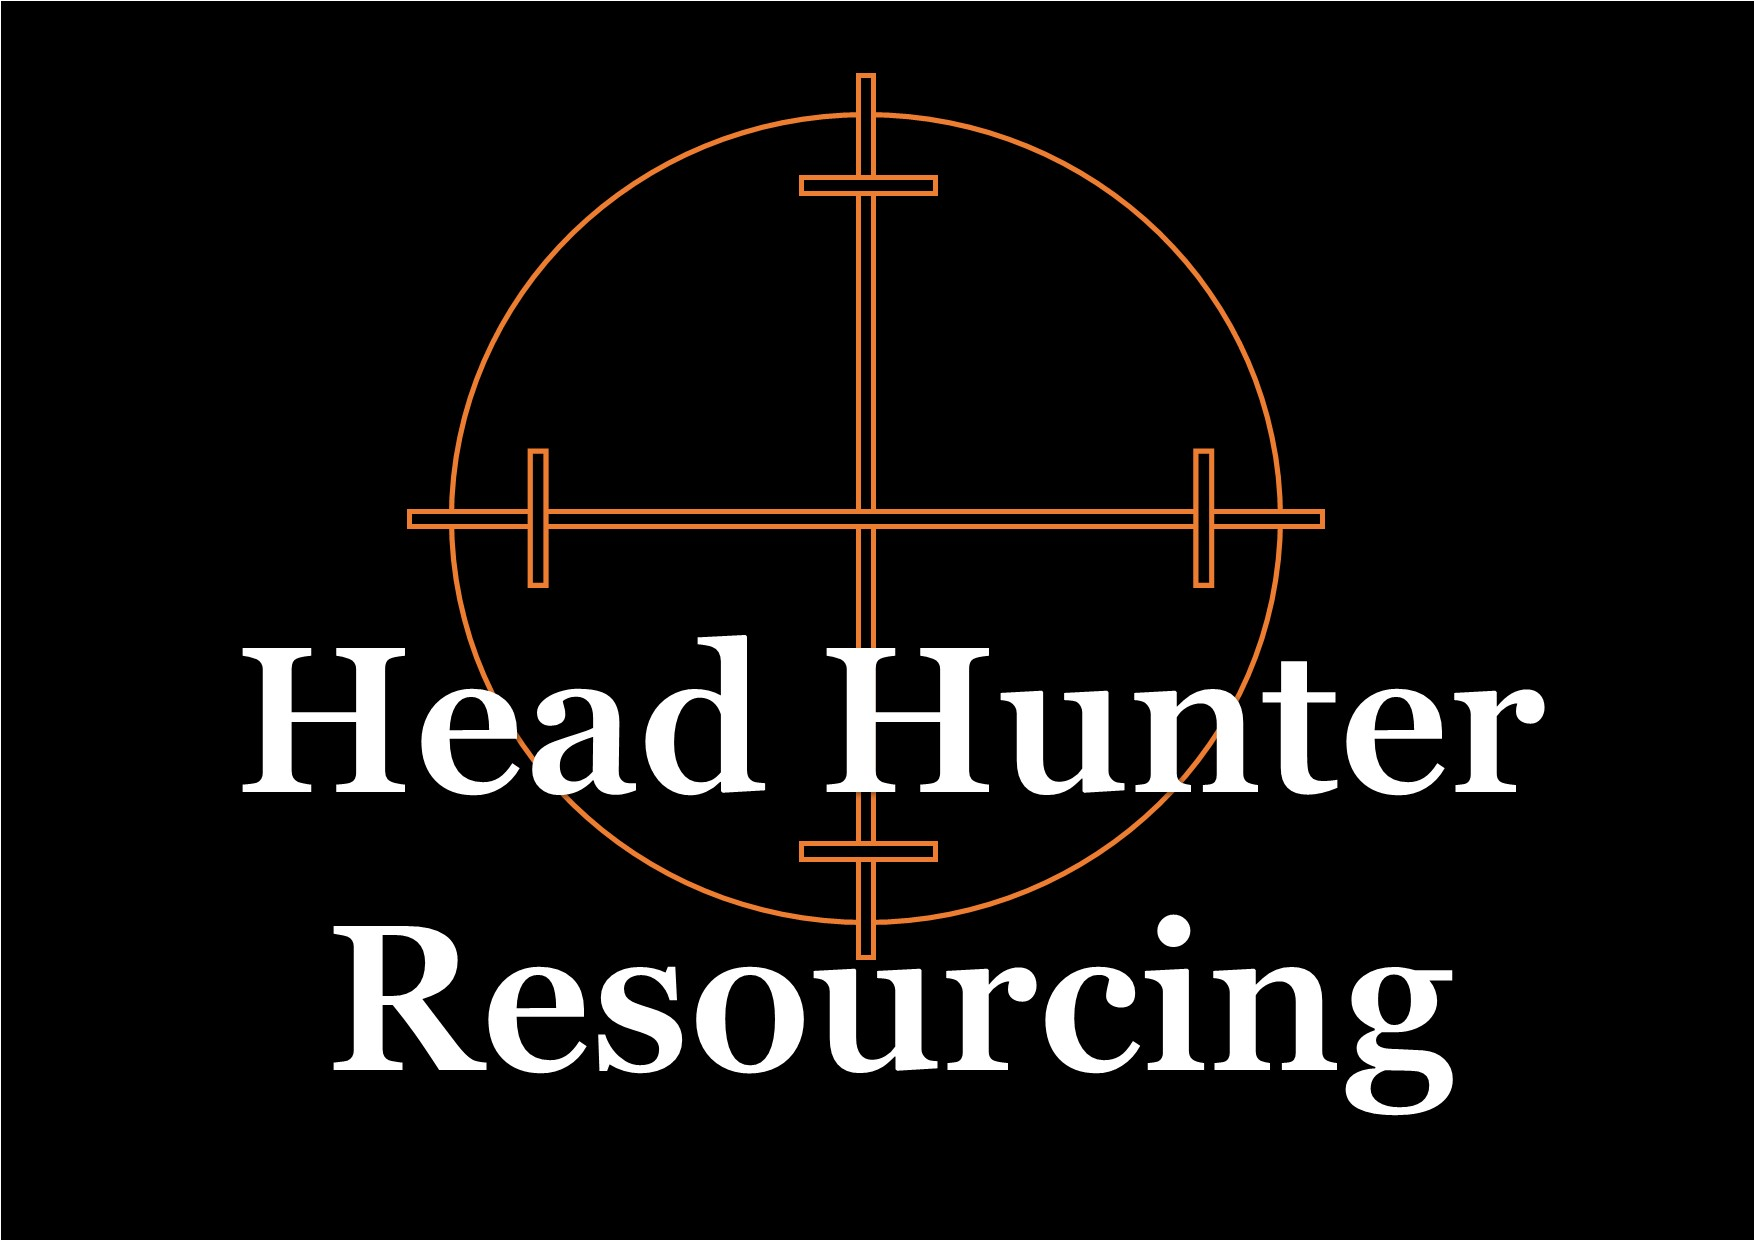 Head Hunter Resourcing